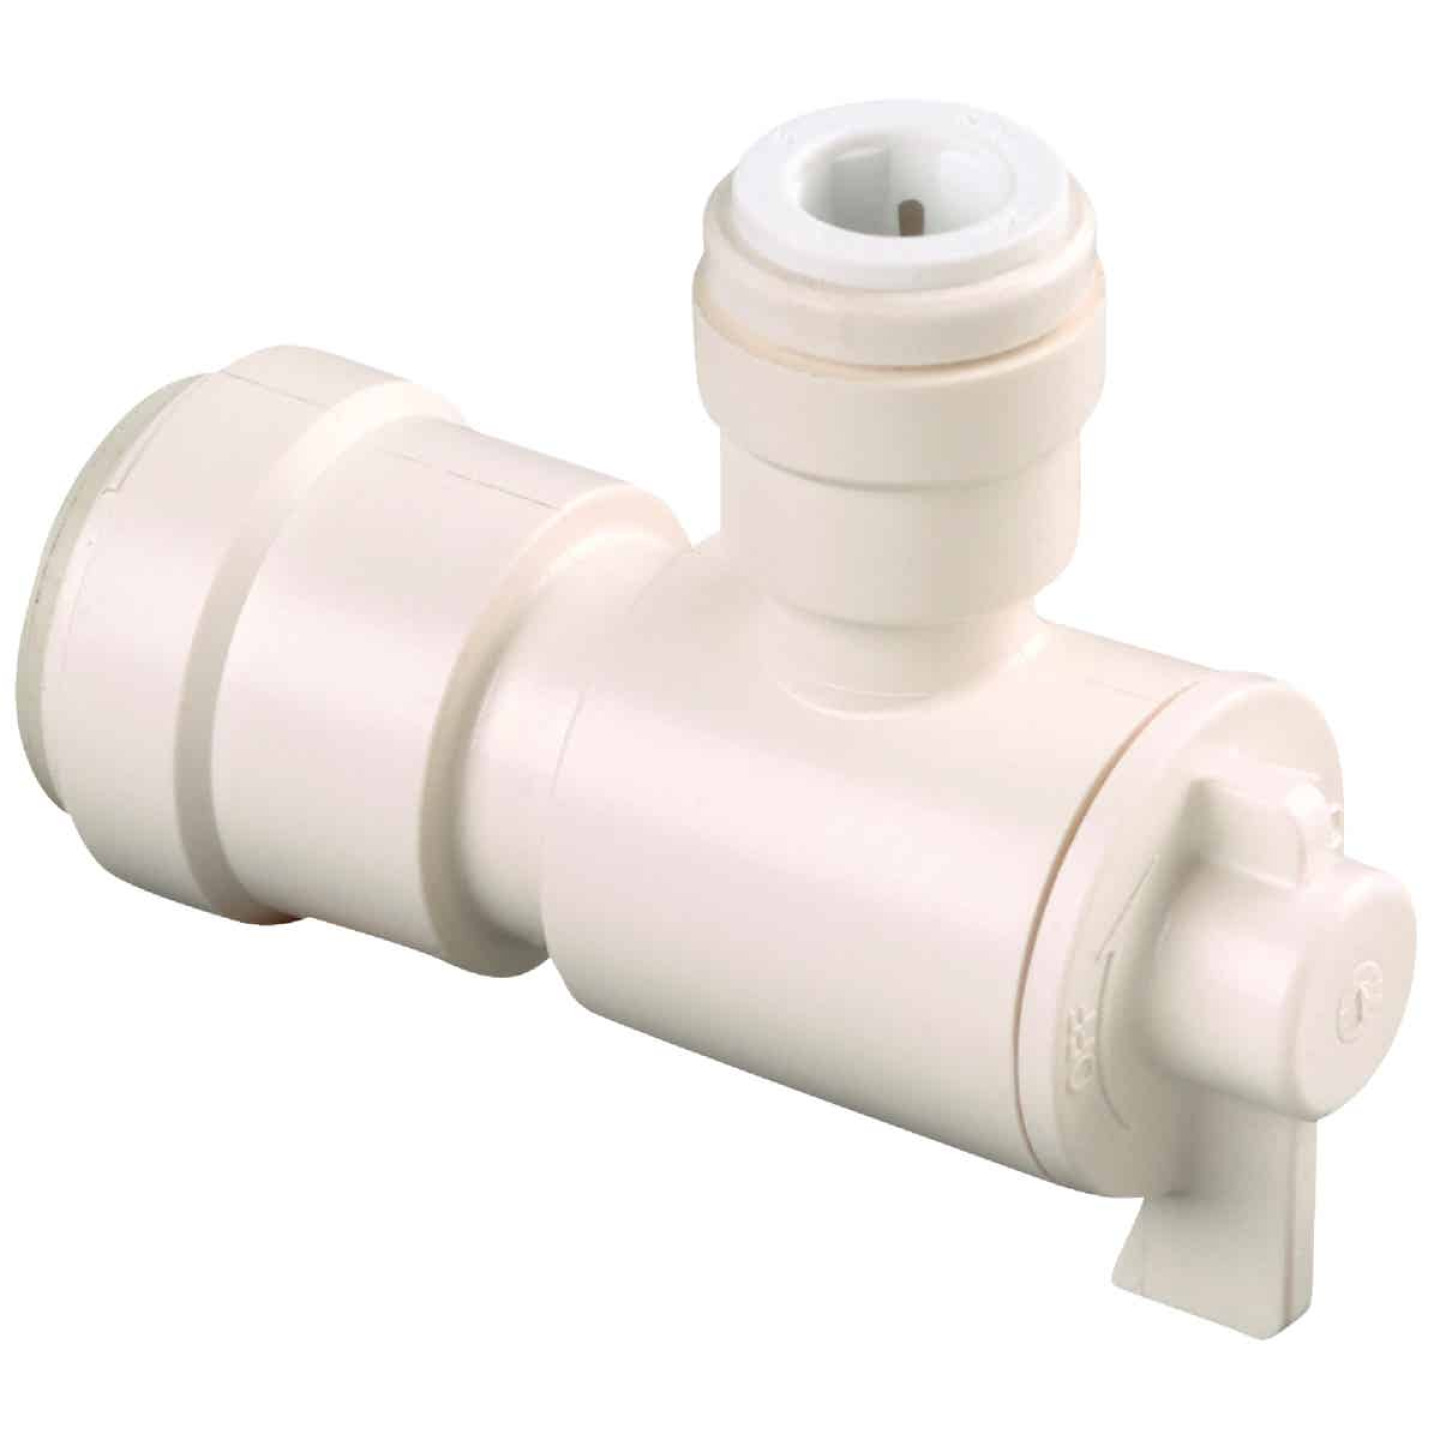 Watts 1/2 In. CTS X 1/4 In. CTS Quick Connect Stop Angle Valve Image 1